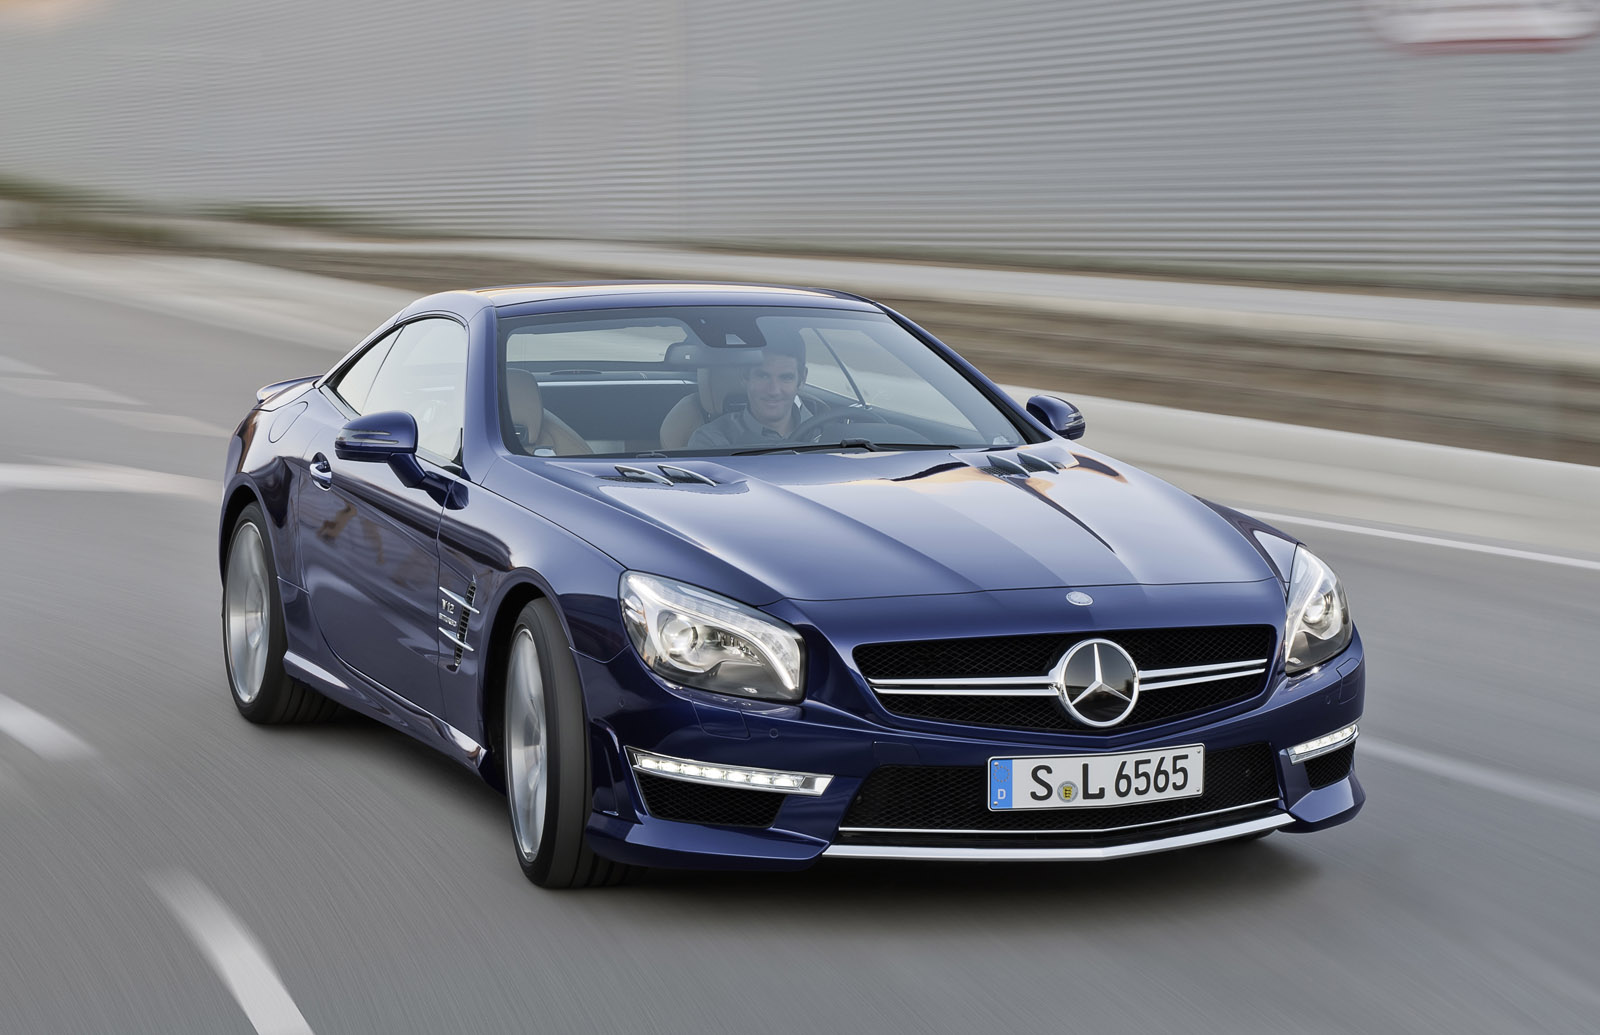 http://1.bp.blogspot.com/-Is0VnBZbn70/T-N3PQwu95I/AAAAAAAAD0c/AKO1F_xbh8I/s1600/Mercedes-Benz+SL65+AMG+Hd+Wallpapers+2013_2.jpg